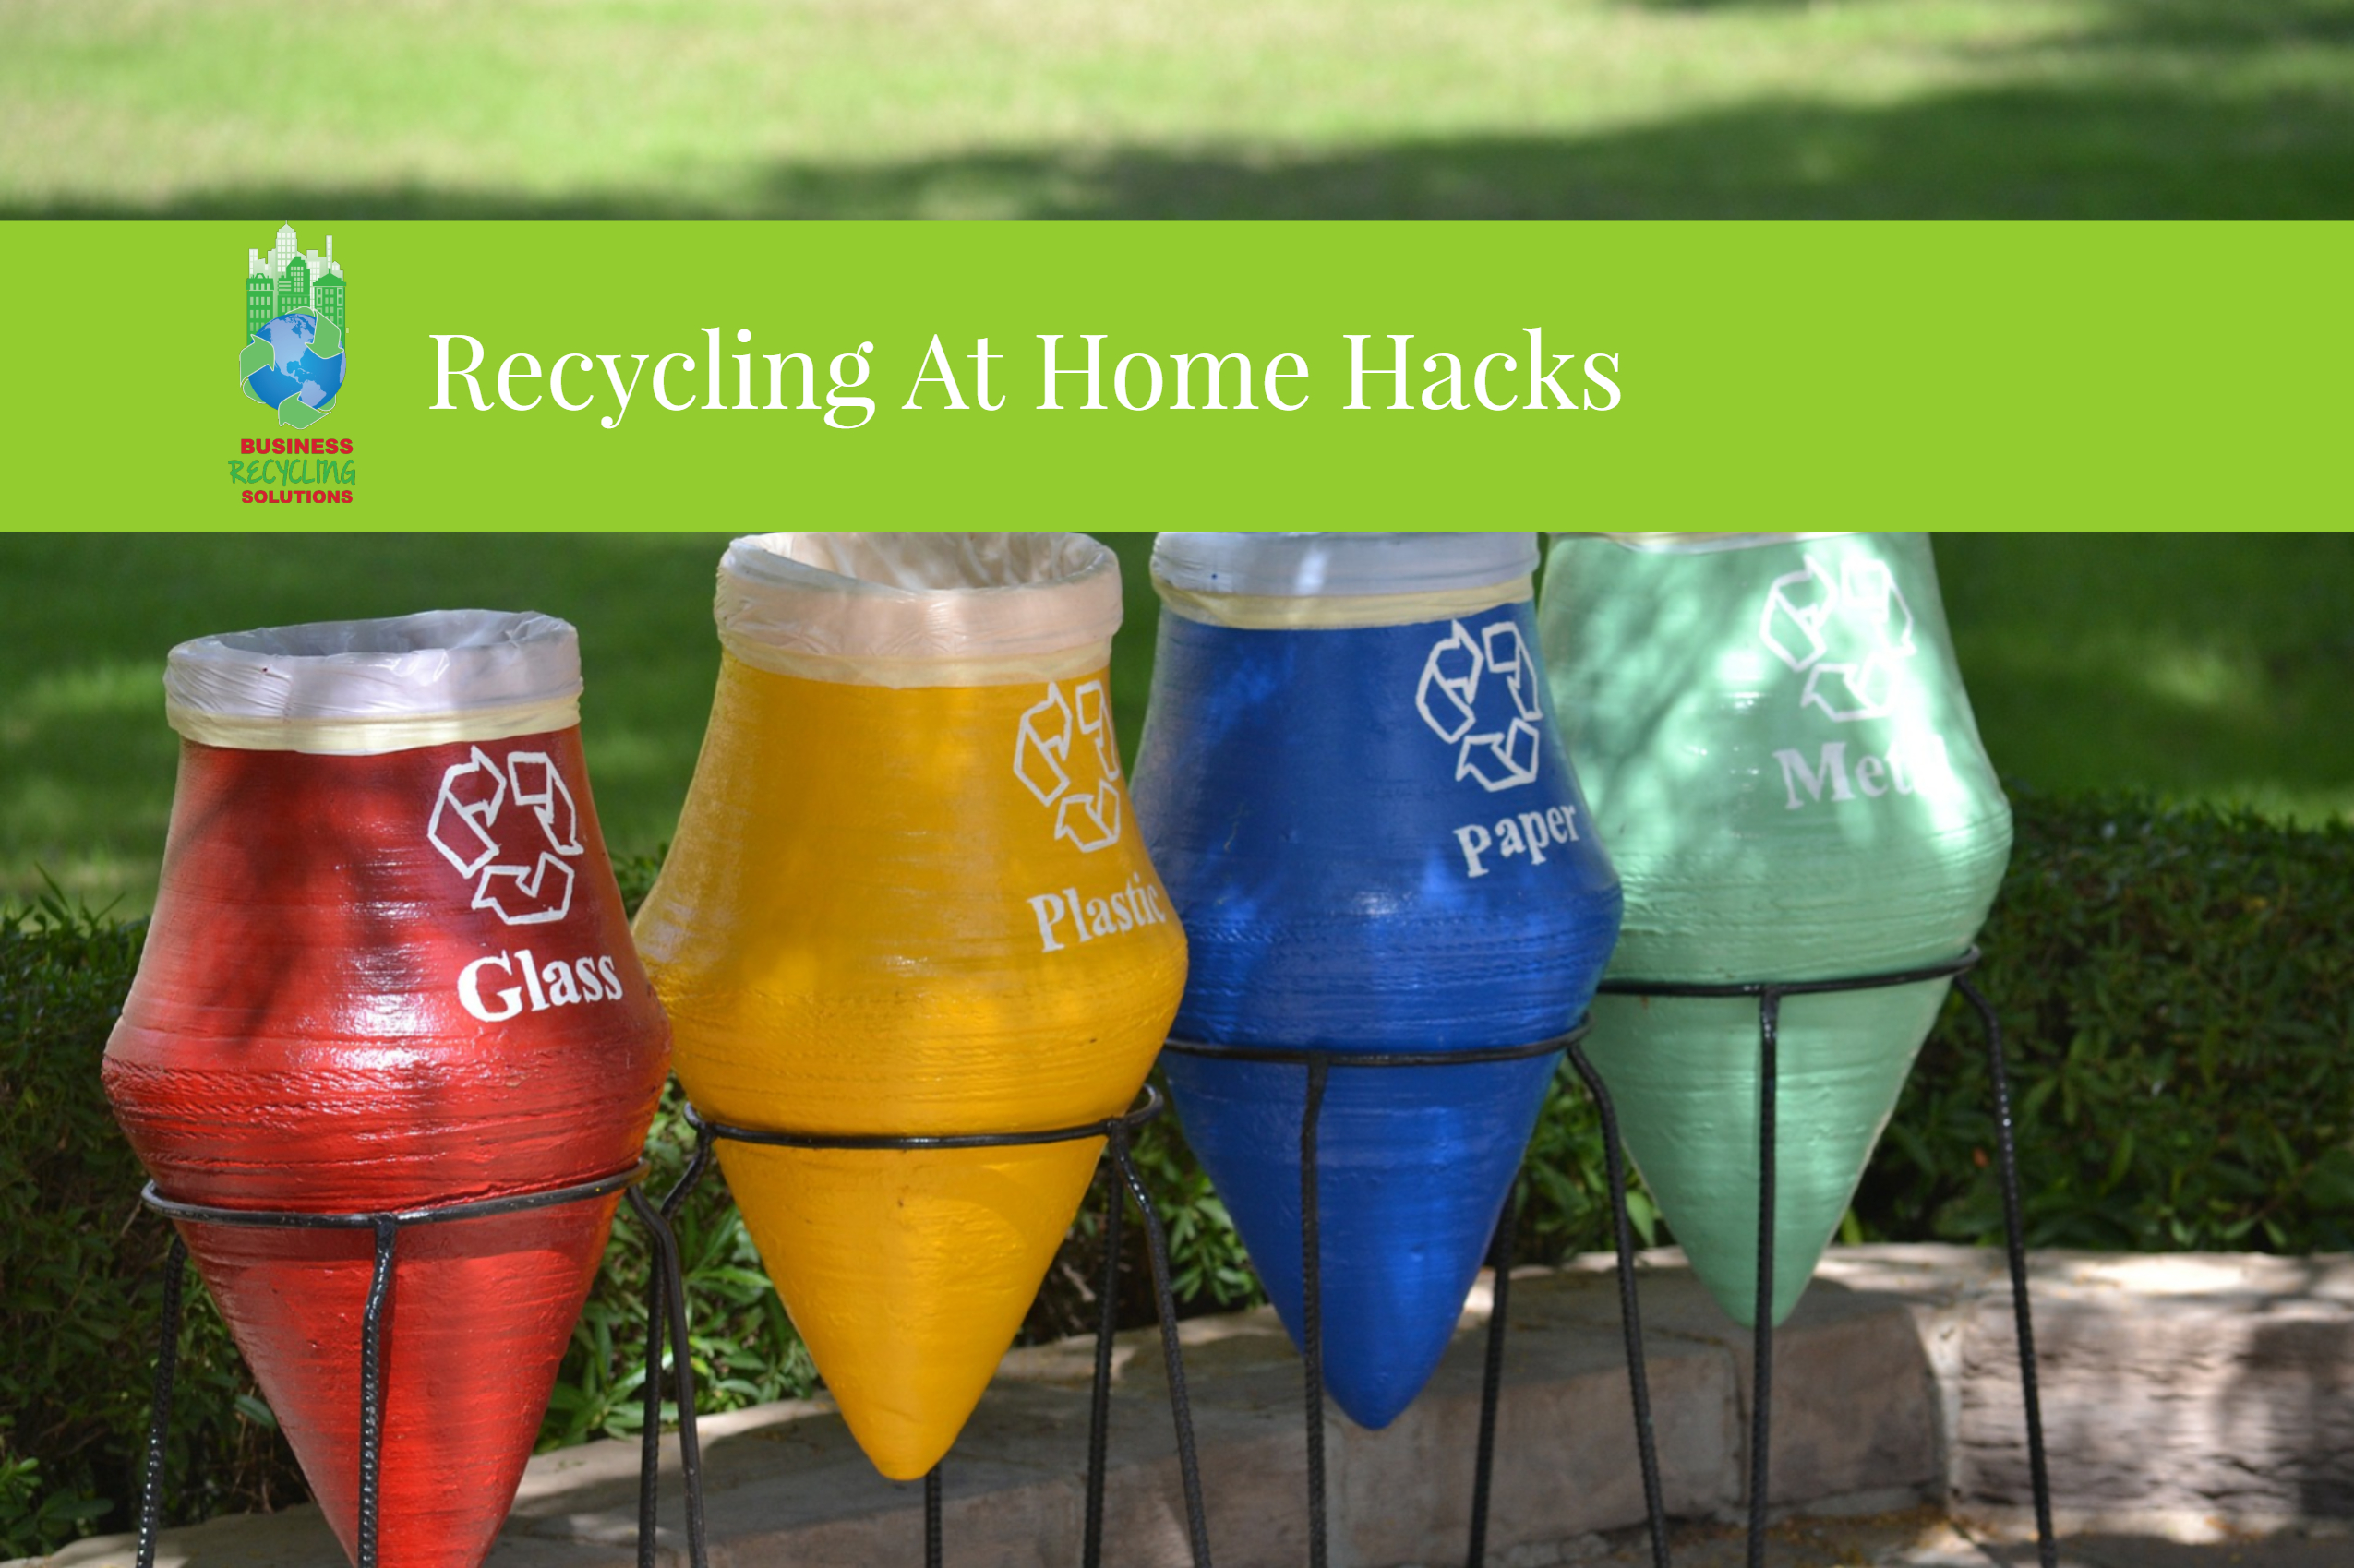 Recycling At Home Hacks